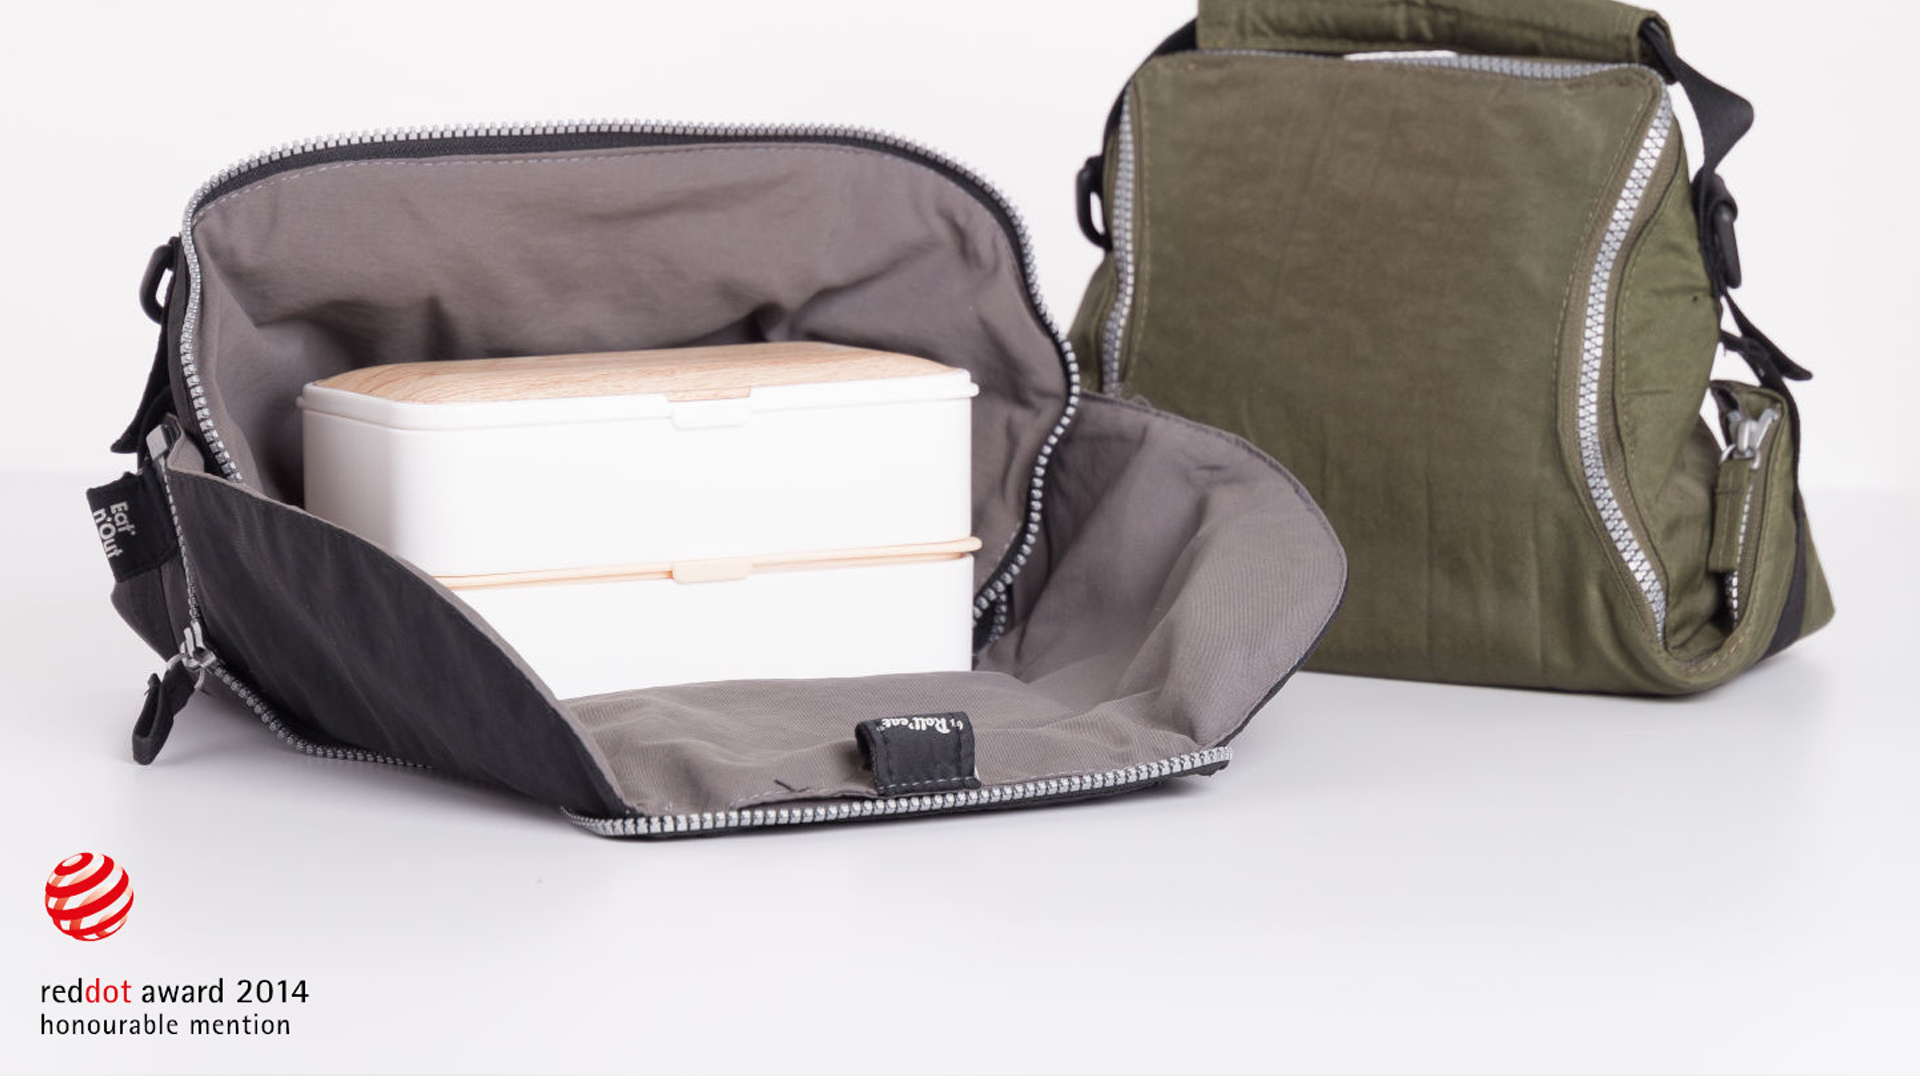 EAT'N'OUT Lunch Box Bag by ALOS. Product Design Studio.